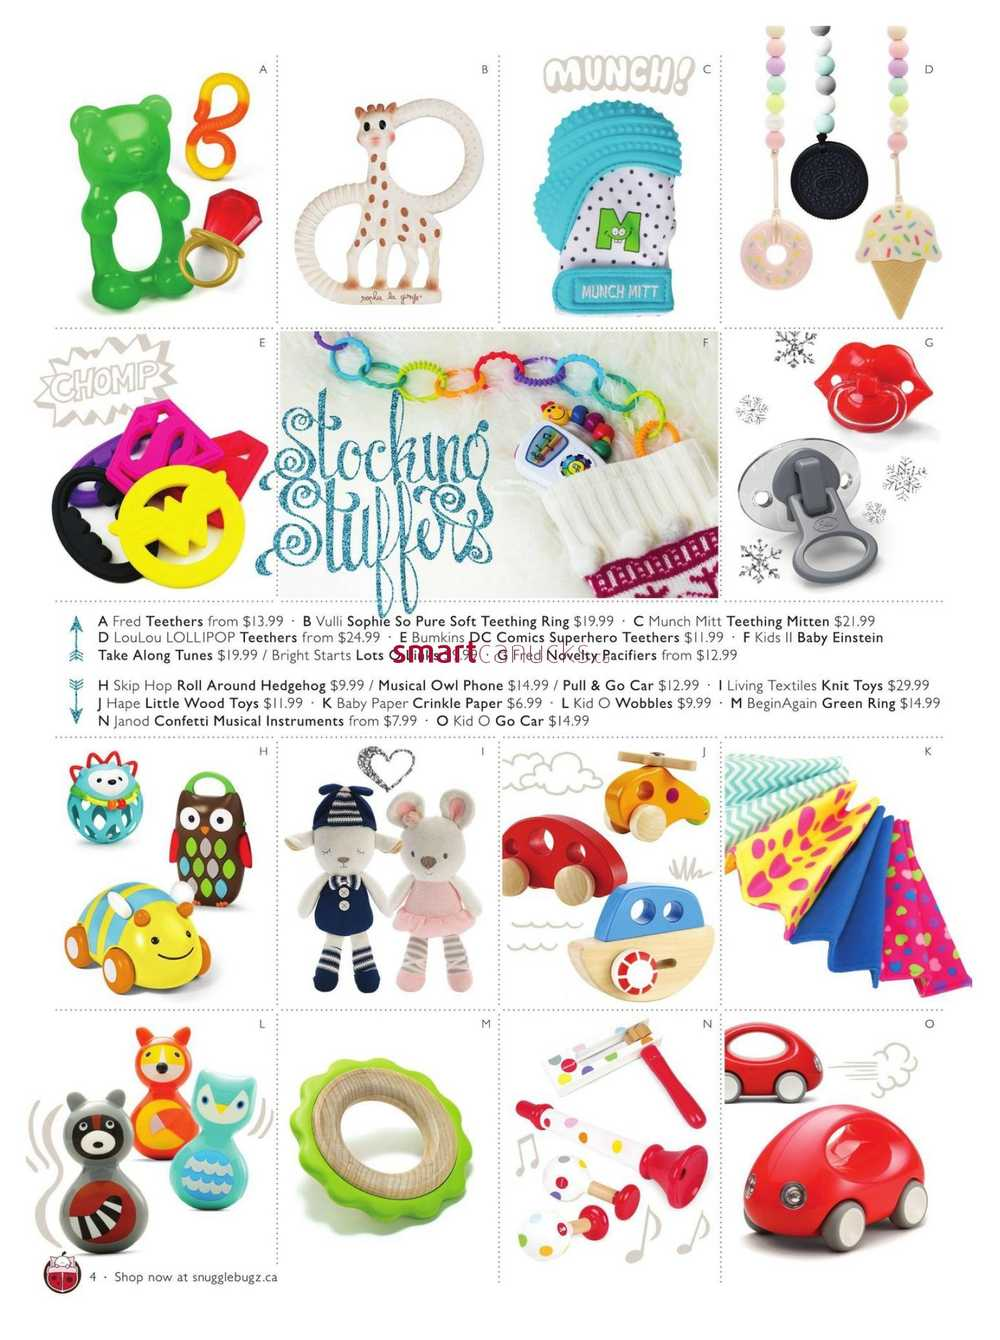 Snuggle Bugz Christmas Toy and Gift Guide November 7 to December 25